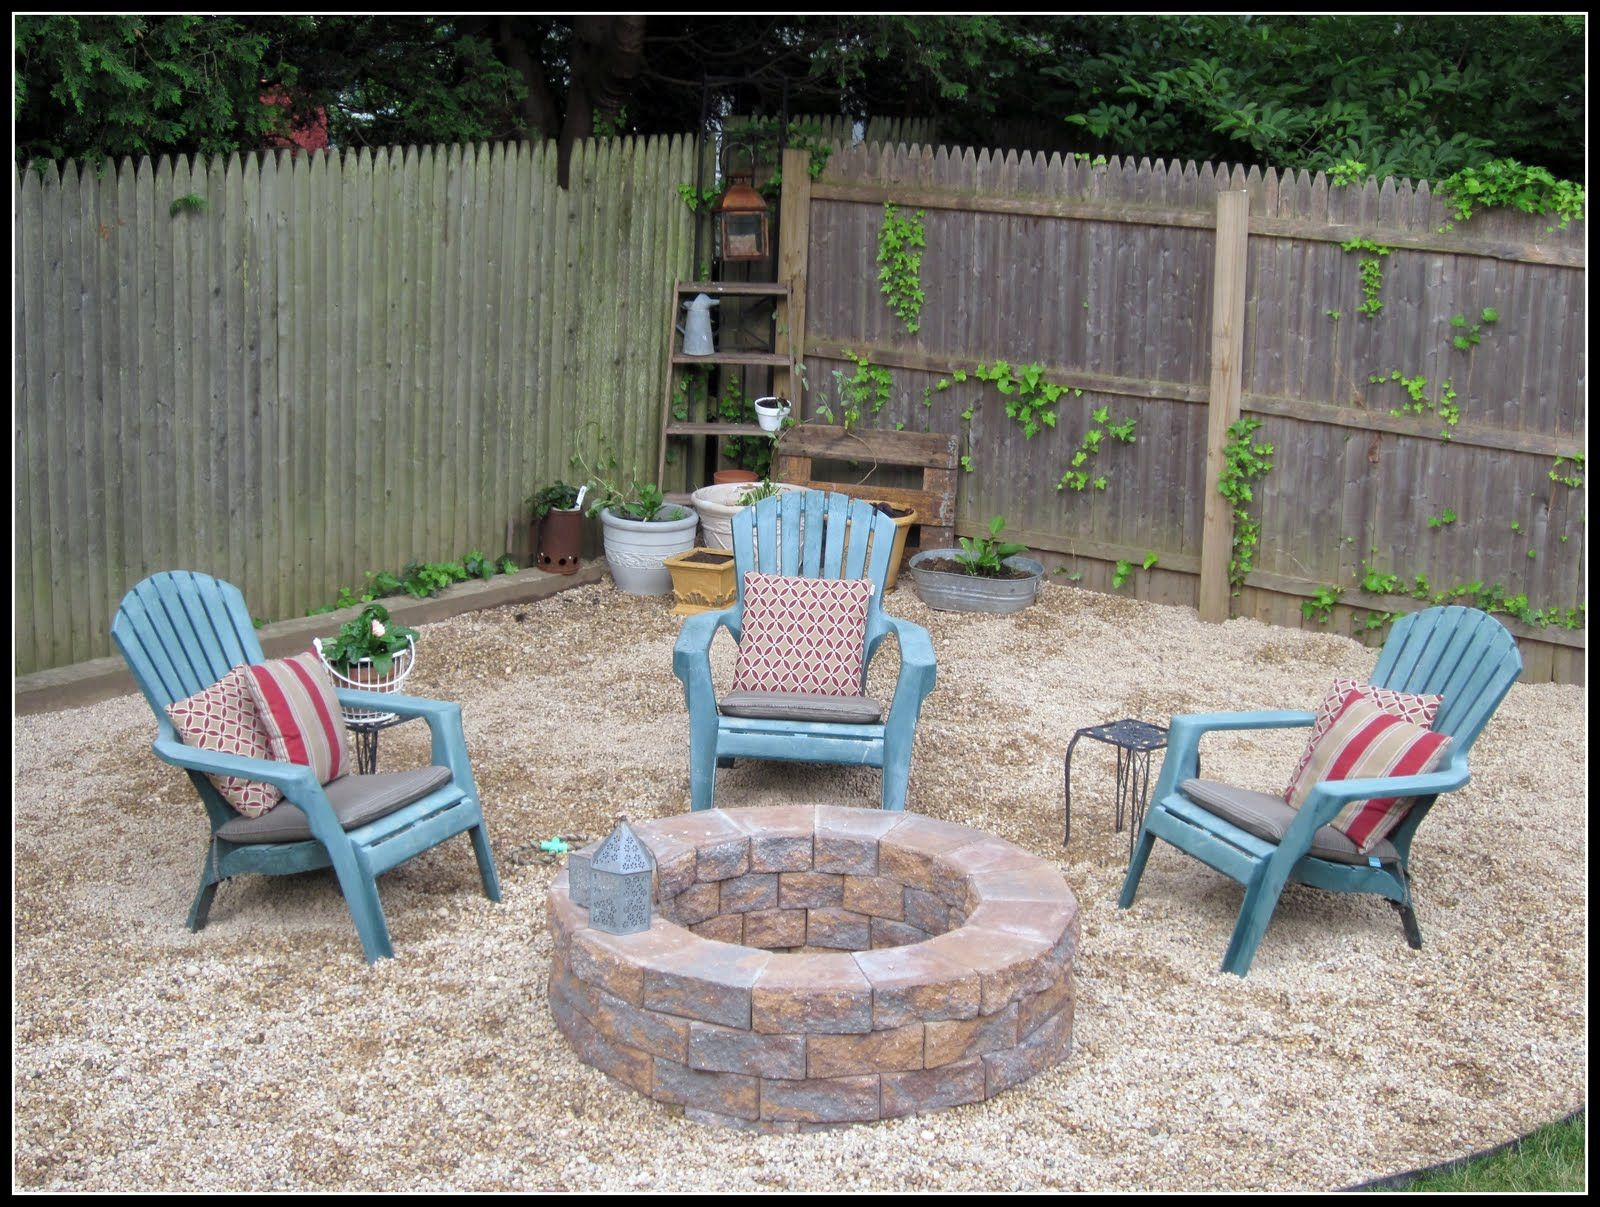 Backyard Fire Pit Designs 66 fire pit and outdoor fireplace ideas Inspiration For Backyard Fire Pit Designs